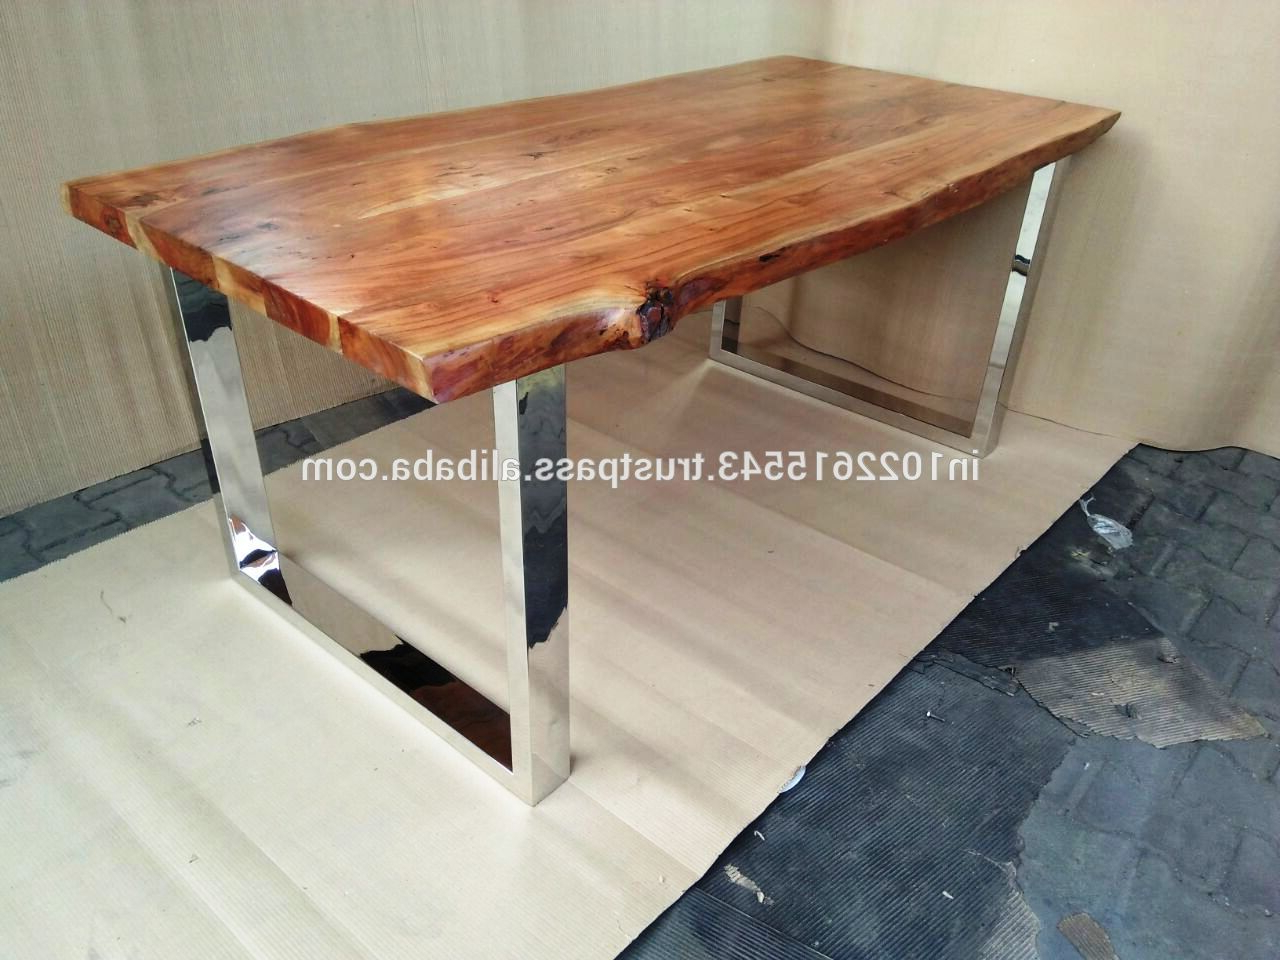 Best And Newest Acacia Top Dining Tables With Metal Legs Throughout Acacia Wood Live Edge Dining Table,live Edge Wood Dining Table – Buy Acacia  Wood Live Edge Dining Table,live Edge Wood Furniture,live Edge Wood Slab (View 13 of 25)